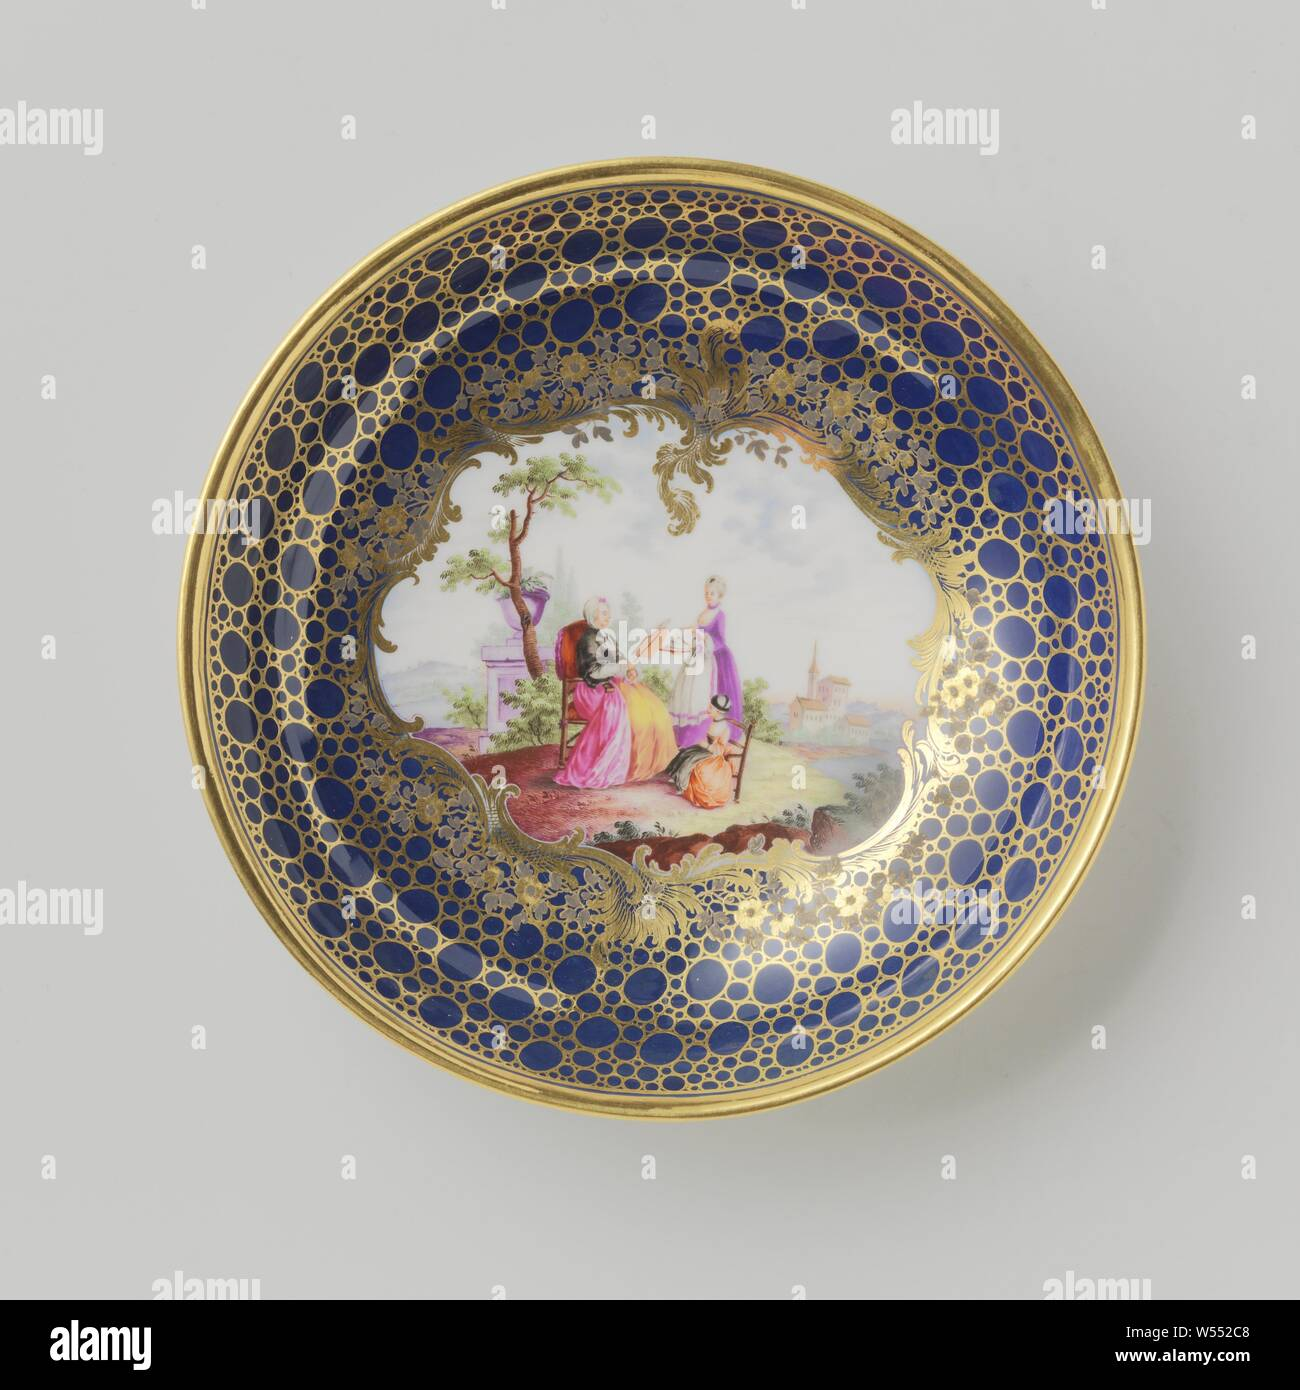 Saucer with a couple in a landscape, Porcelain dish, painted on